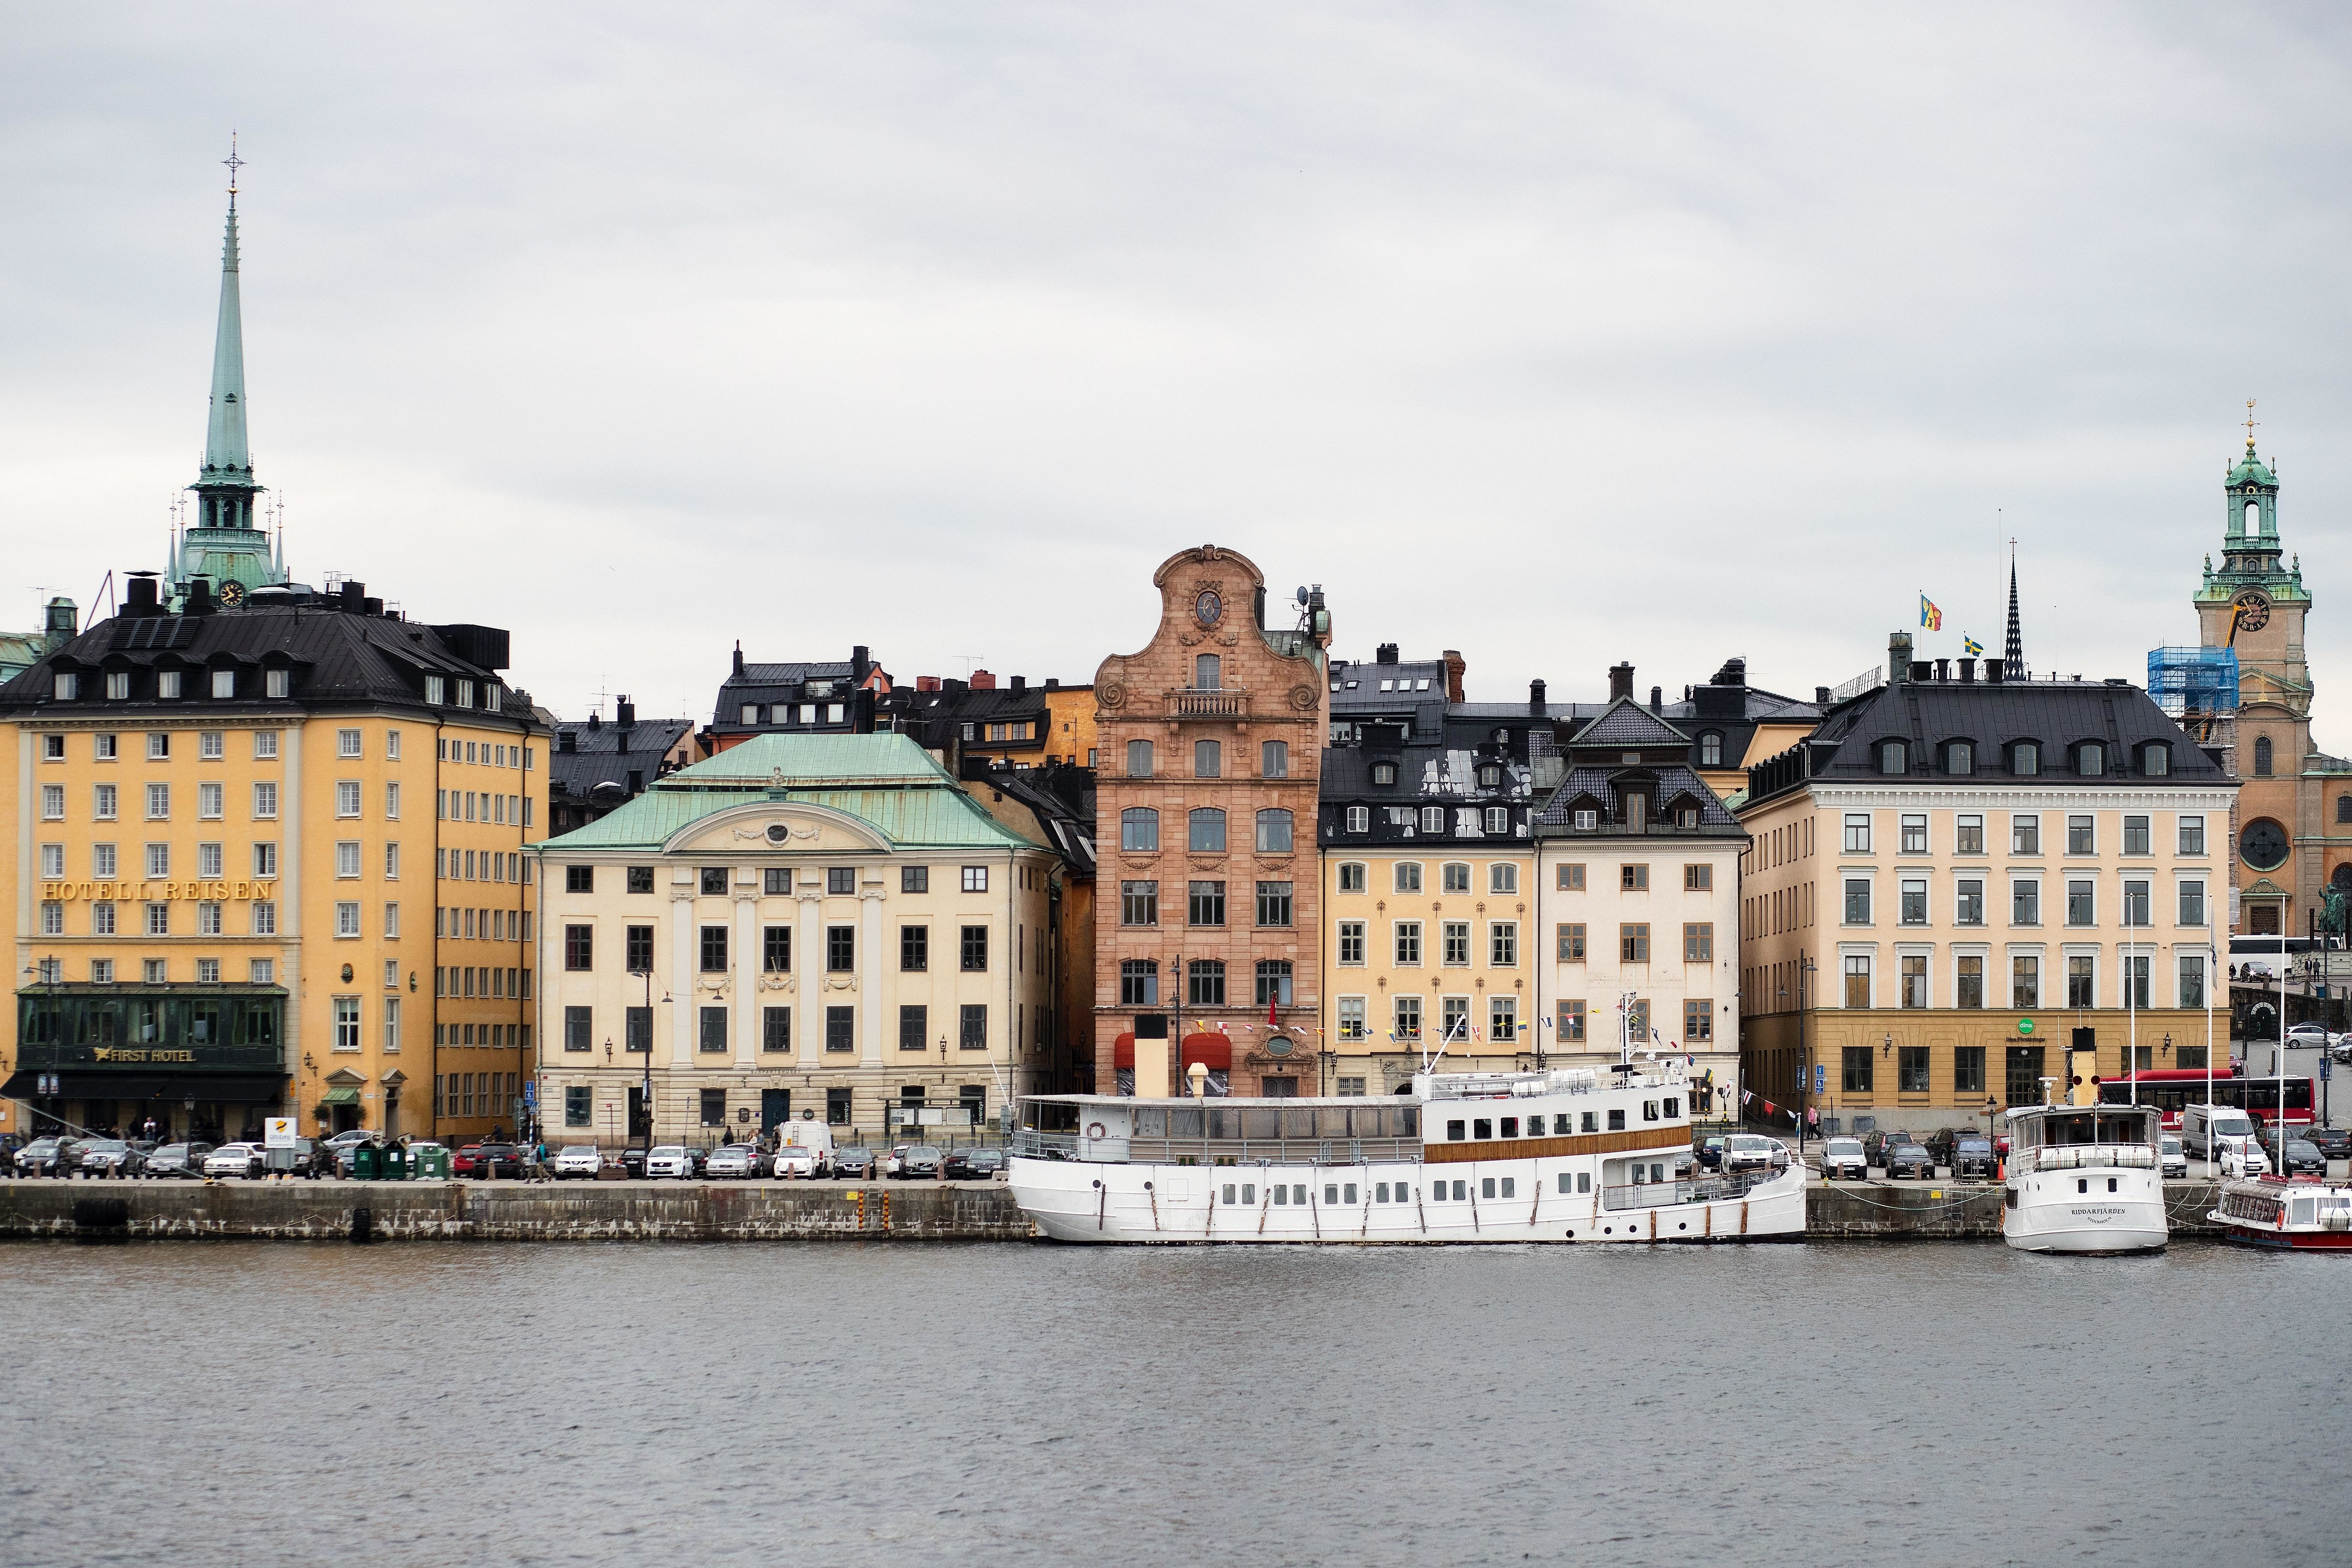 Stockholm Sweden wellbeing mental health society